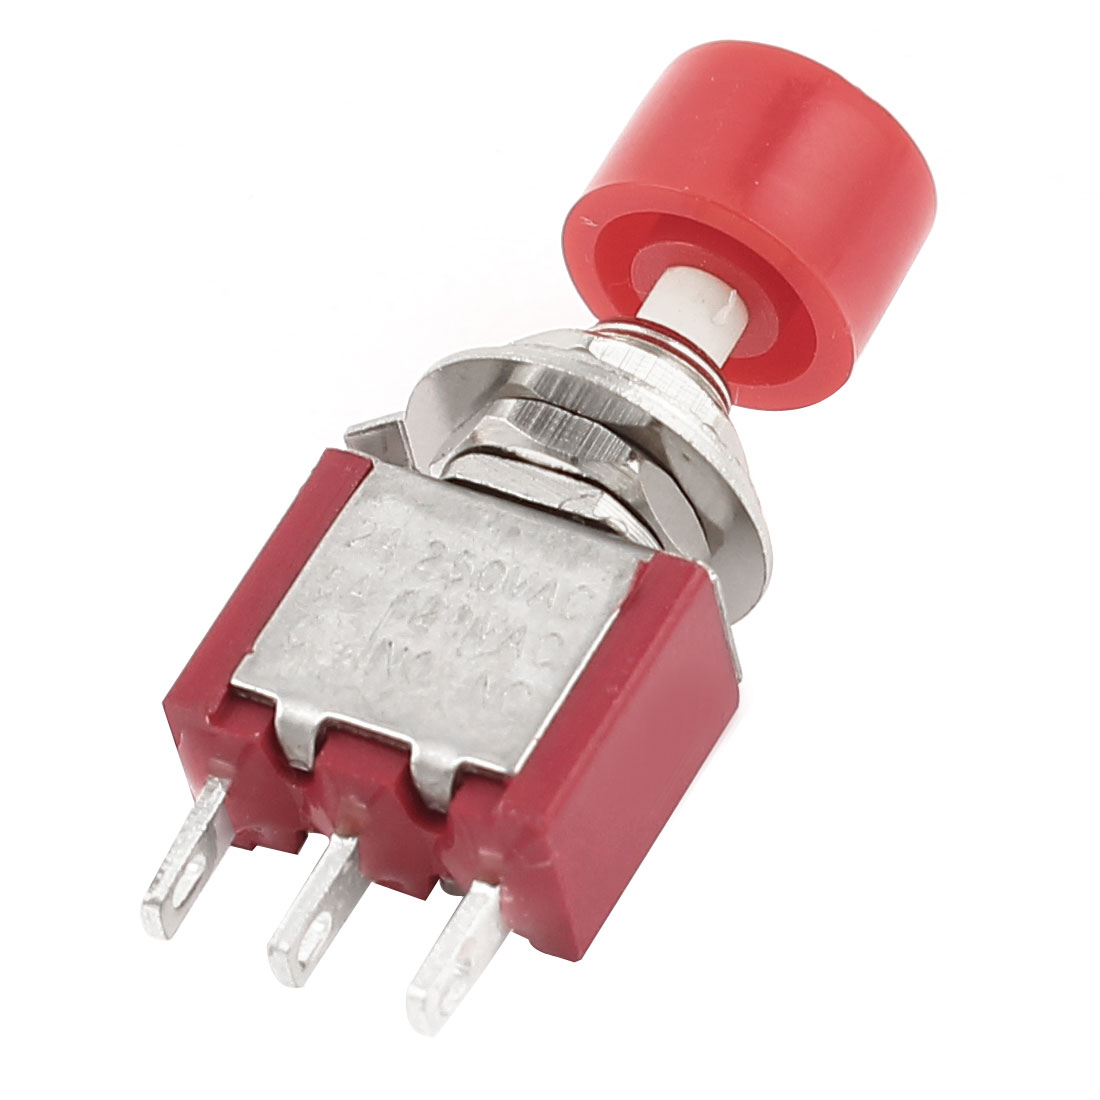 AC 120V 5A SPDT 1NO 1NC Momentary Red Round Push Button Switch